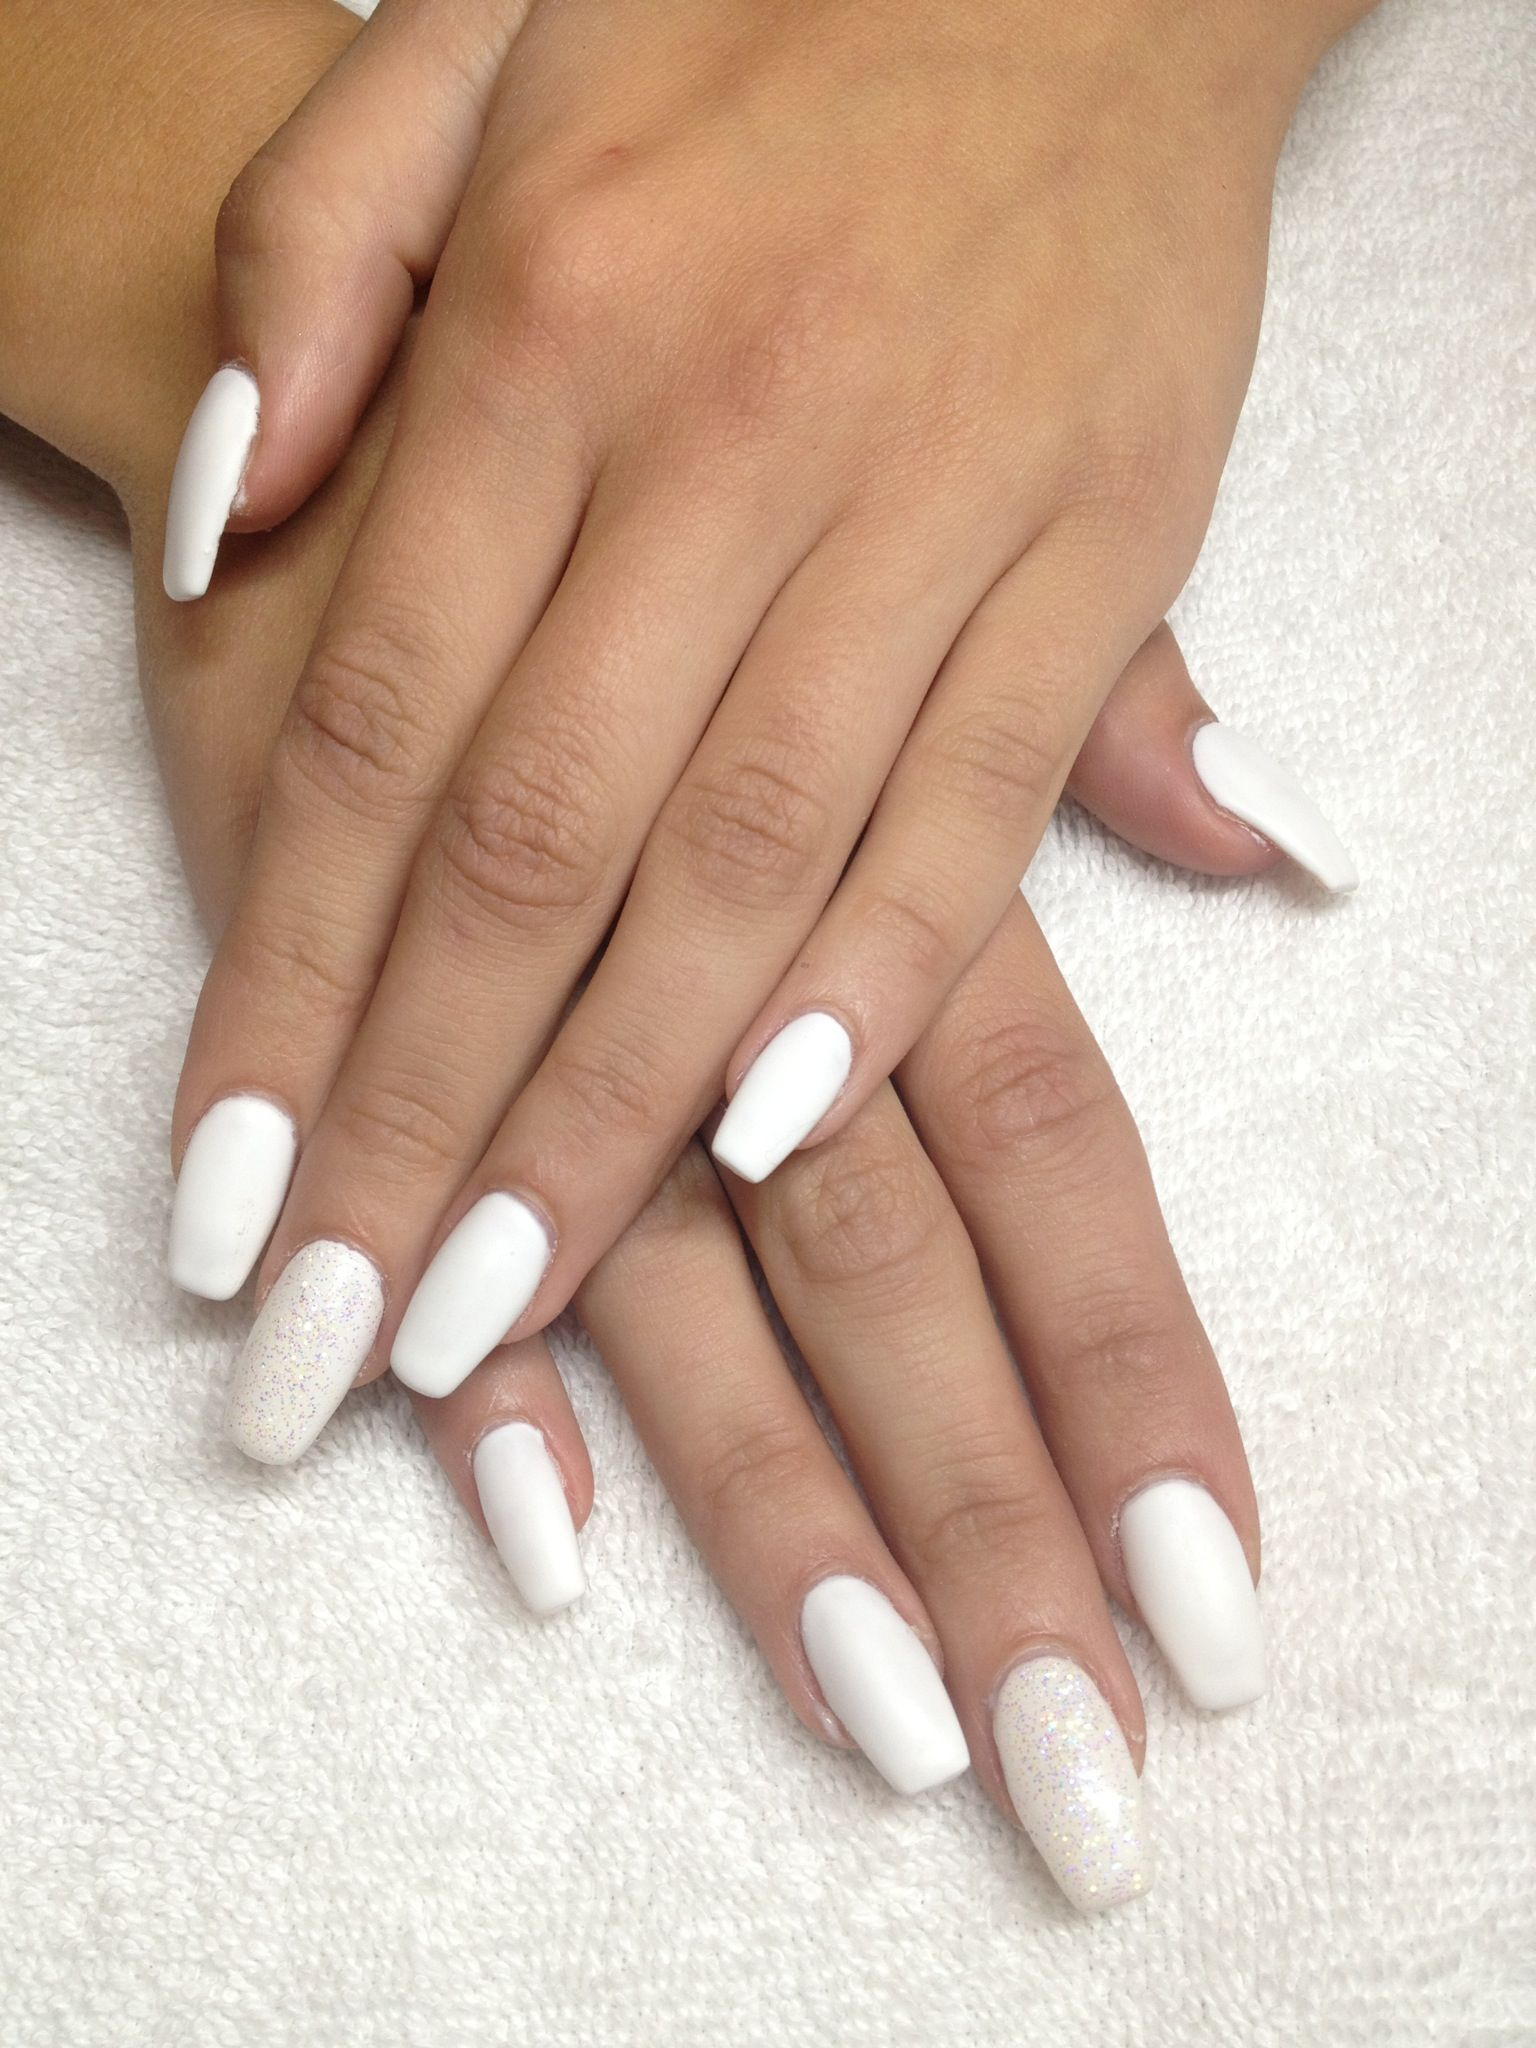 Matte White Coffin Shape Gel Nails Gel Nails French Gel Nails Diy Gel Nail Extensions